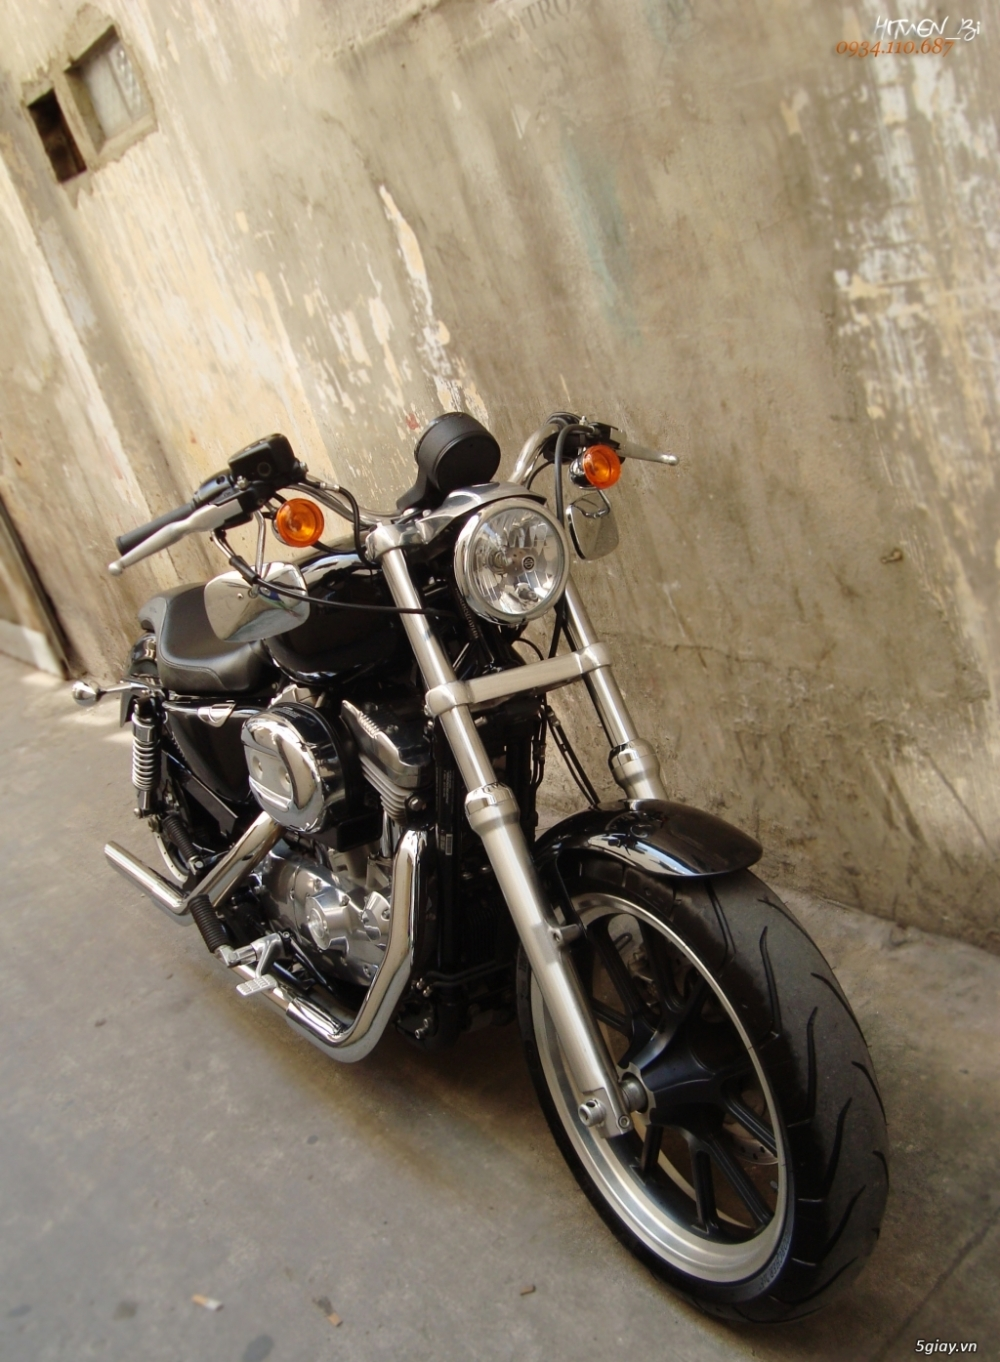 ___ Can Ban ___HARLEY DAVIDSON 883 Superlow 2014 ABS___ - 4